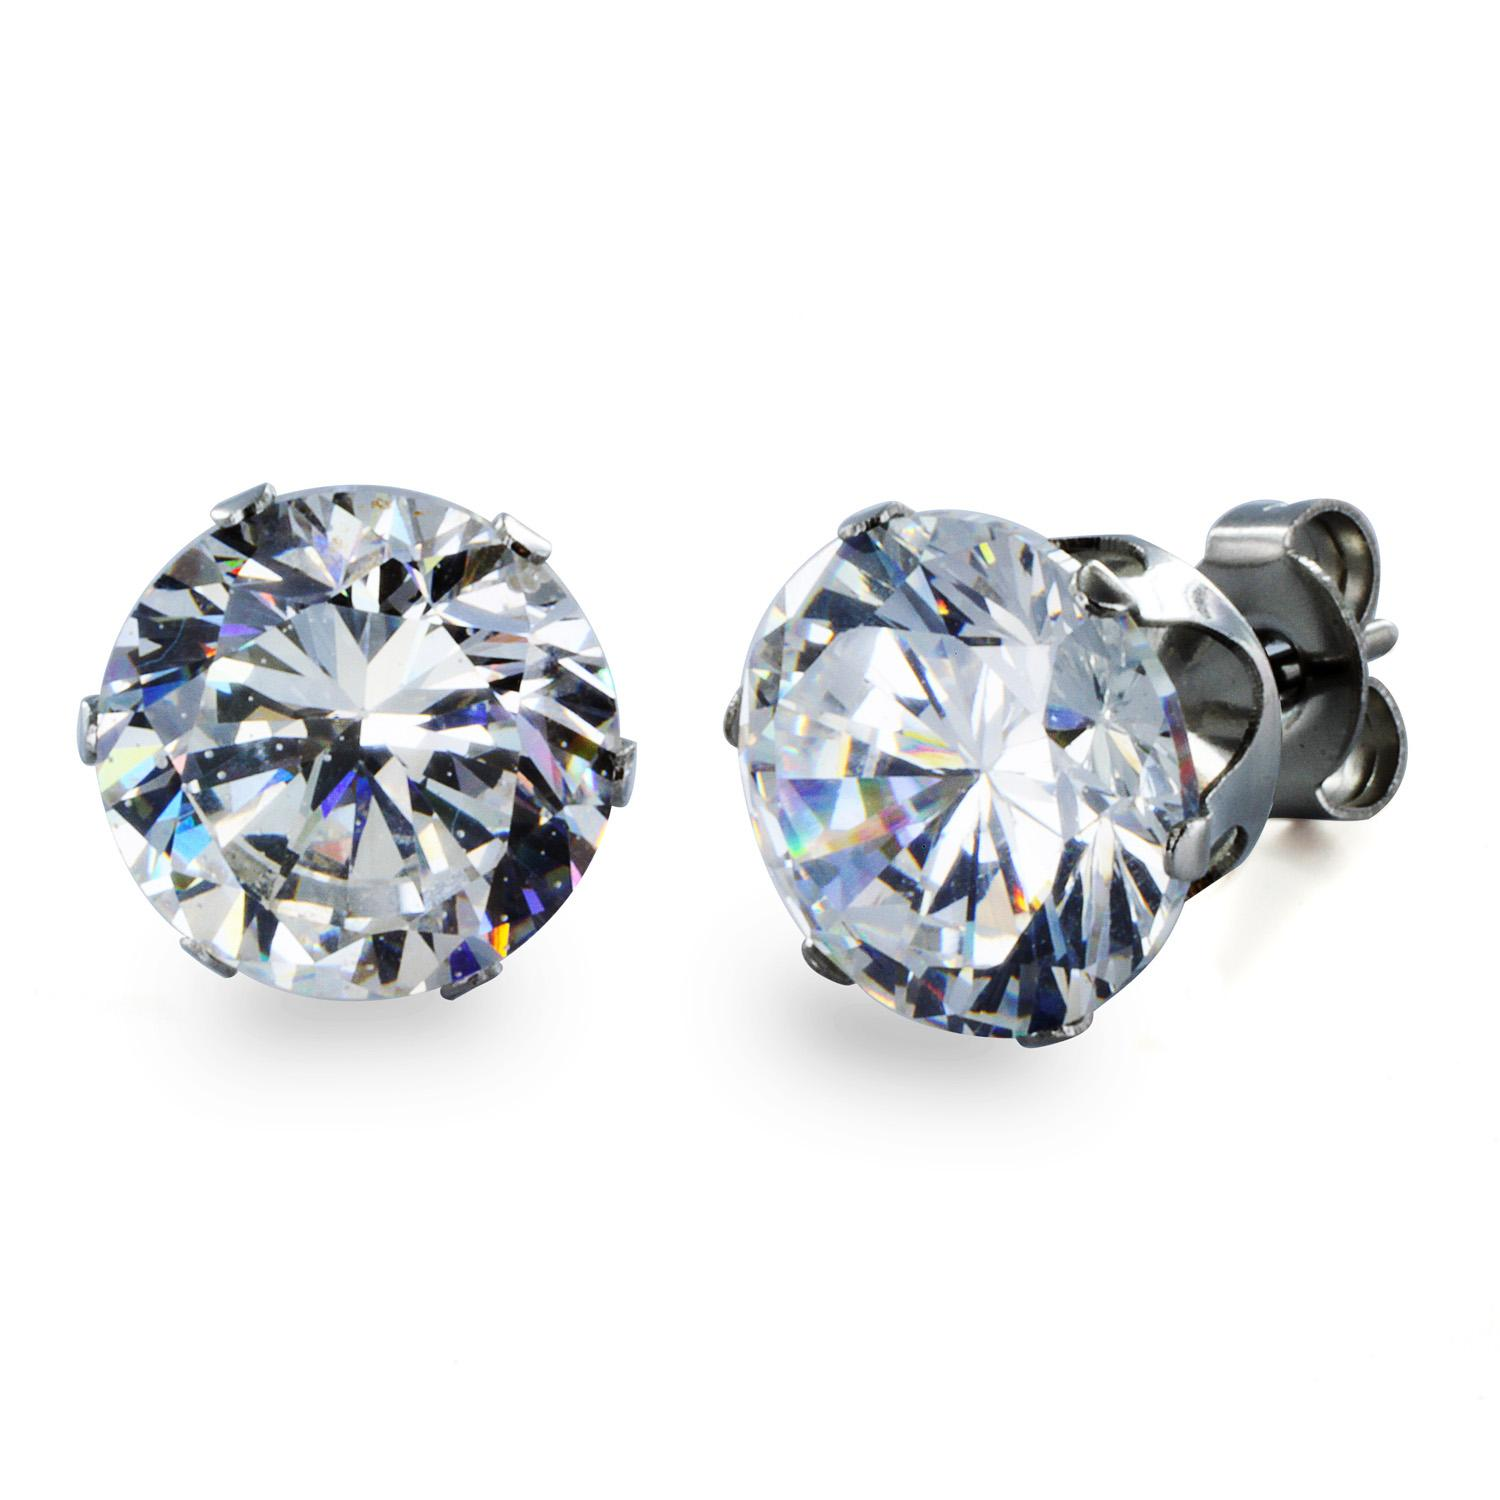 Stainless Steel Stud Earrings with Round Clear CZ - 9 mm